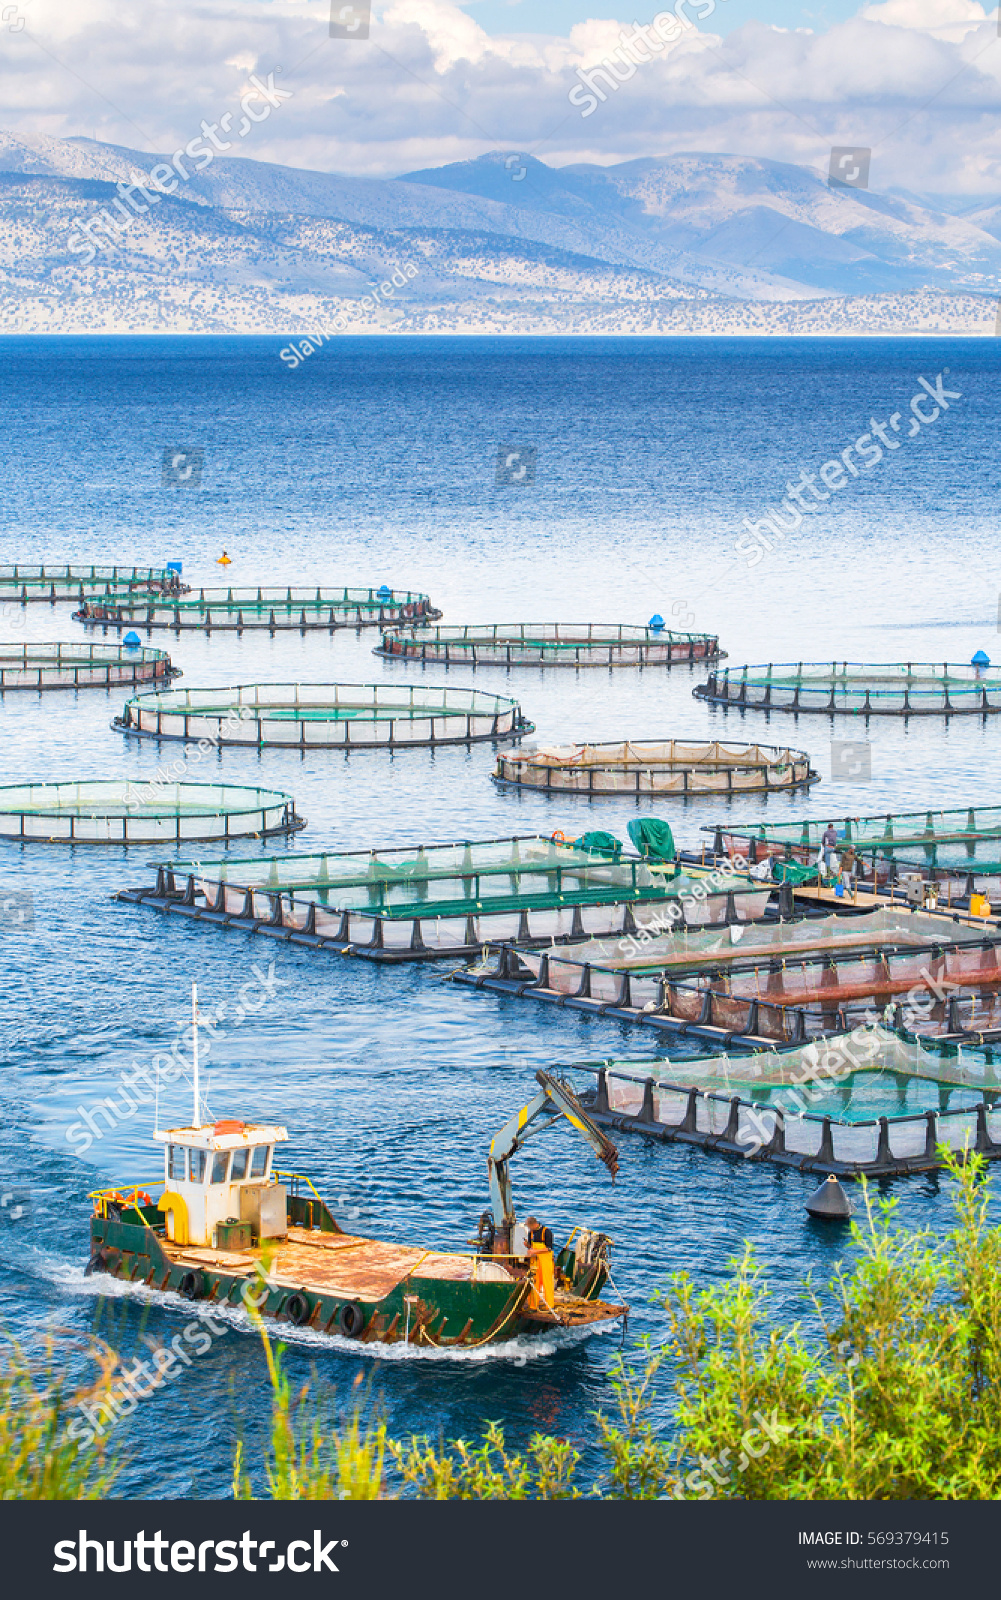 Sea fish farm cages fish farming stock photo 569379415 for What is fish farming